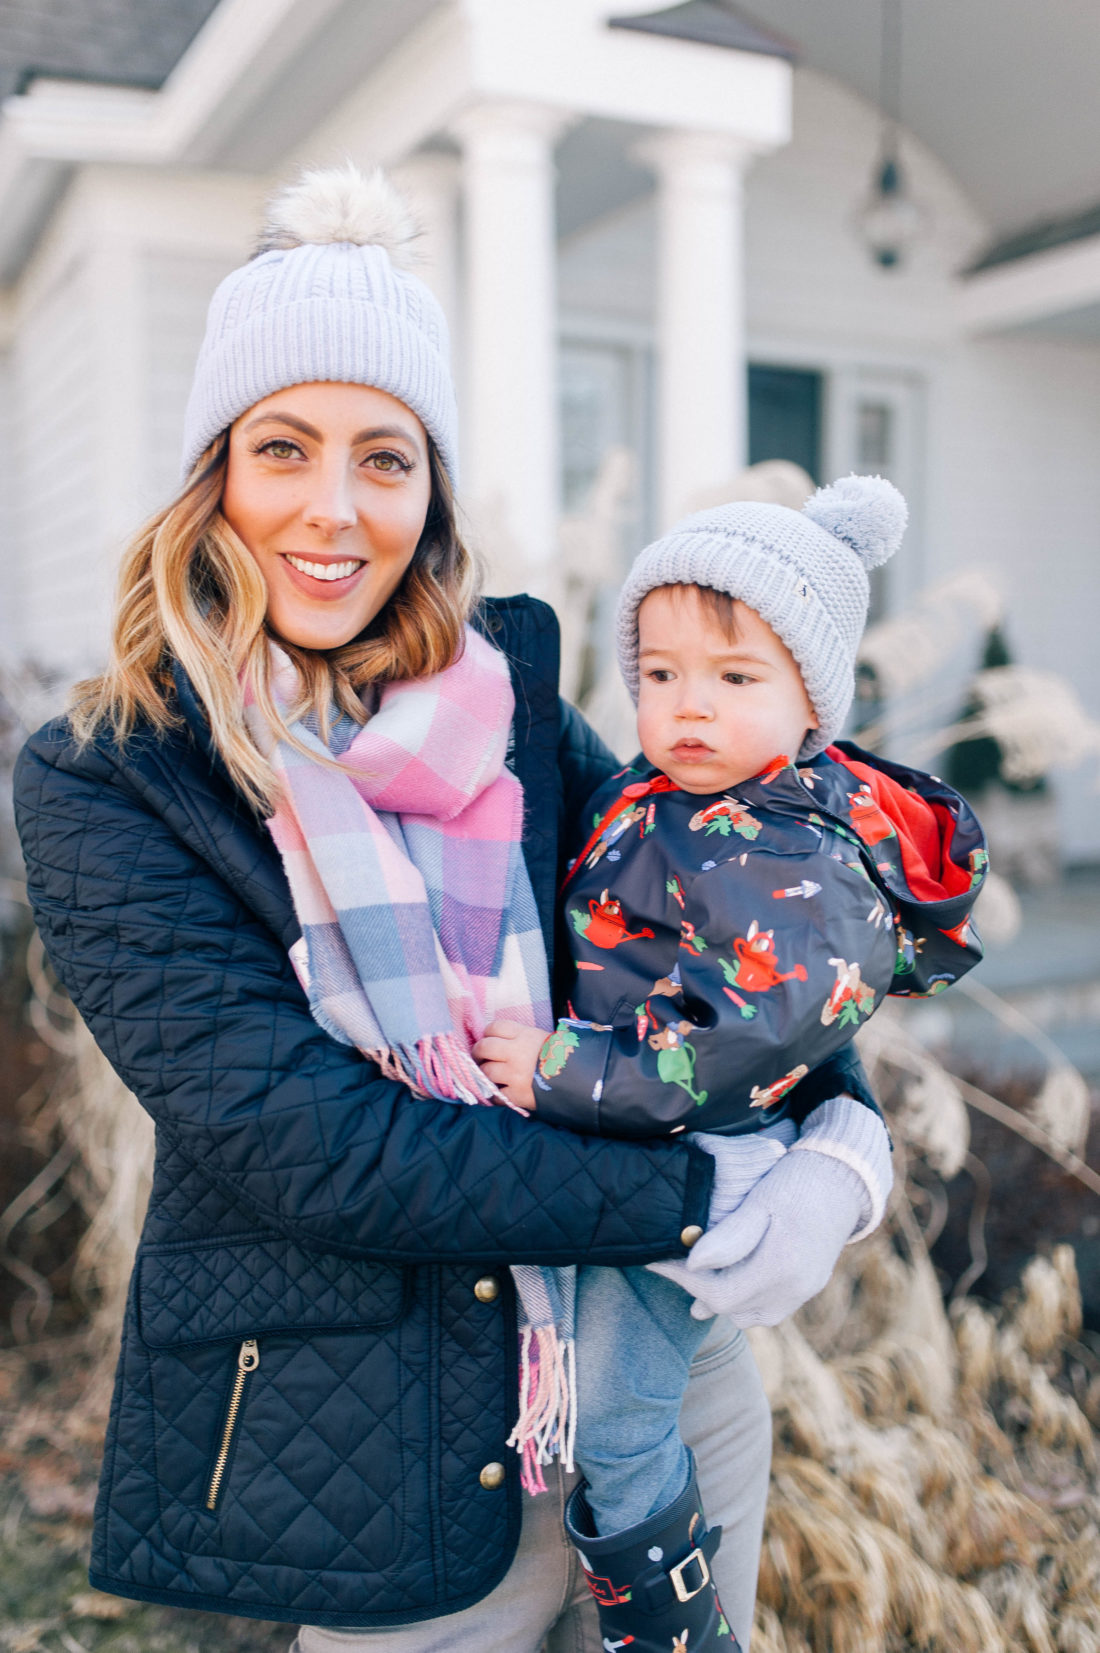 Eva Amurri Martino holds one year old son Major and walks through the garden of her Connecticut home